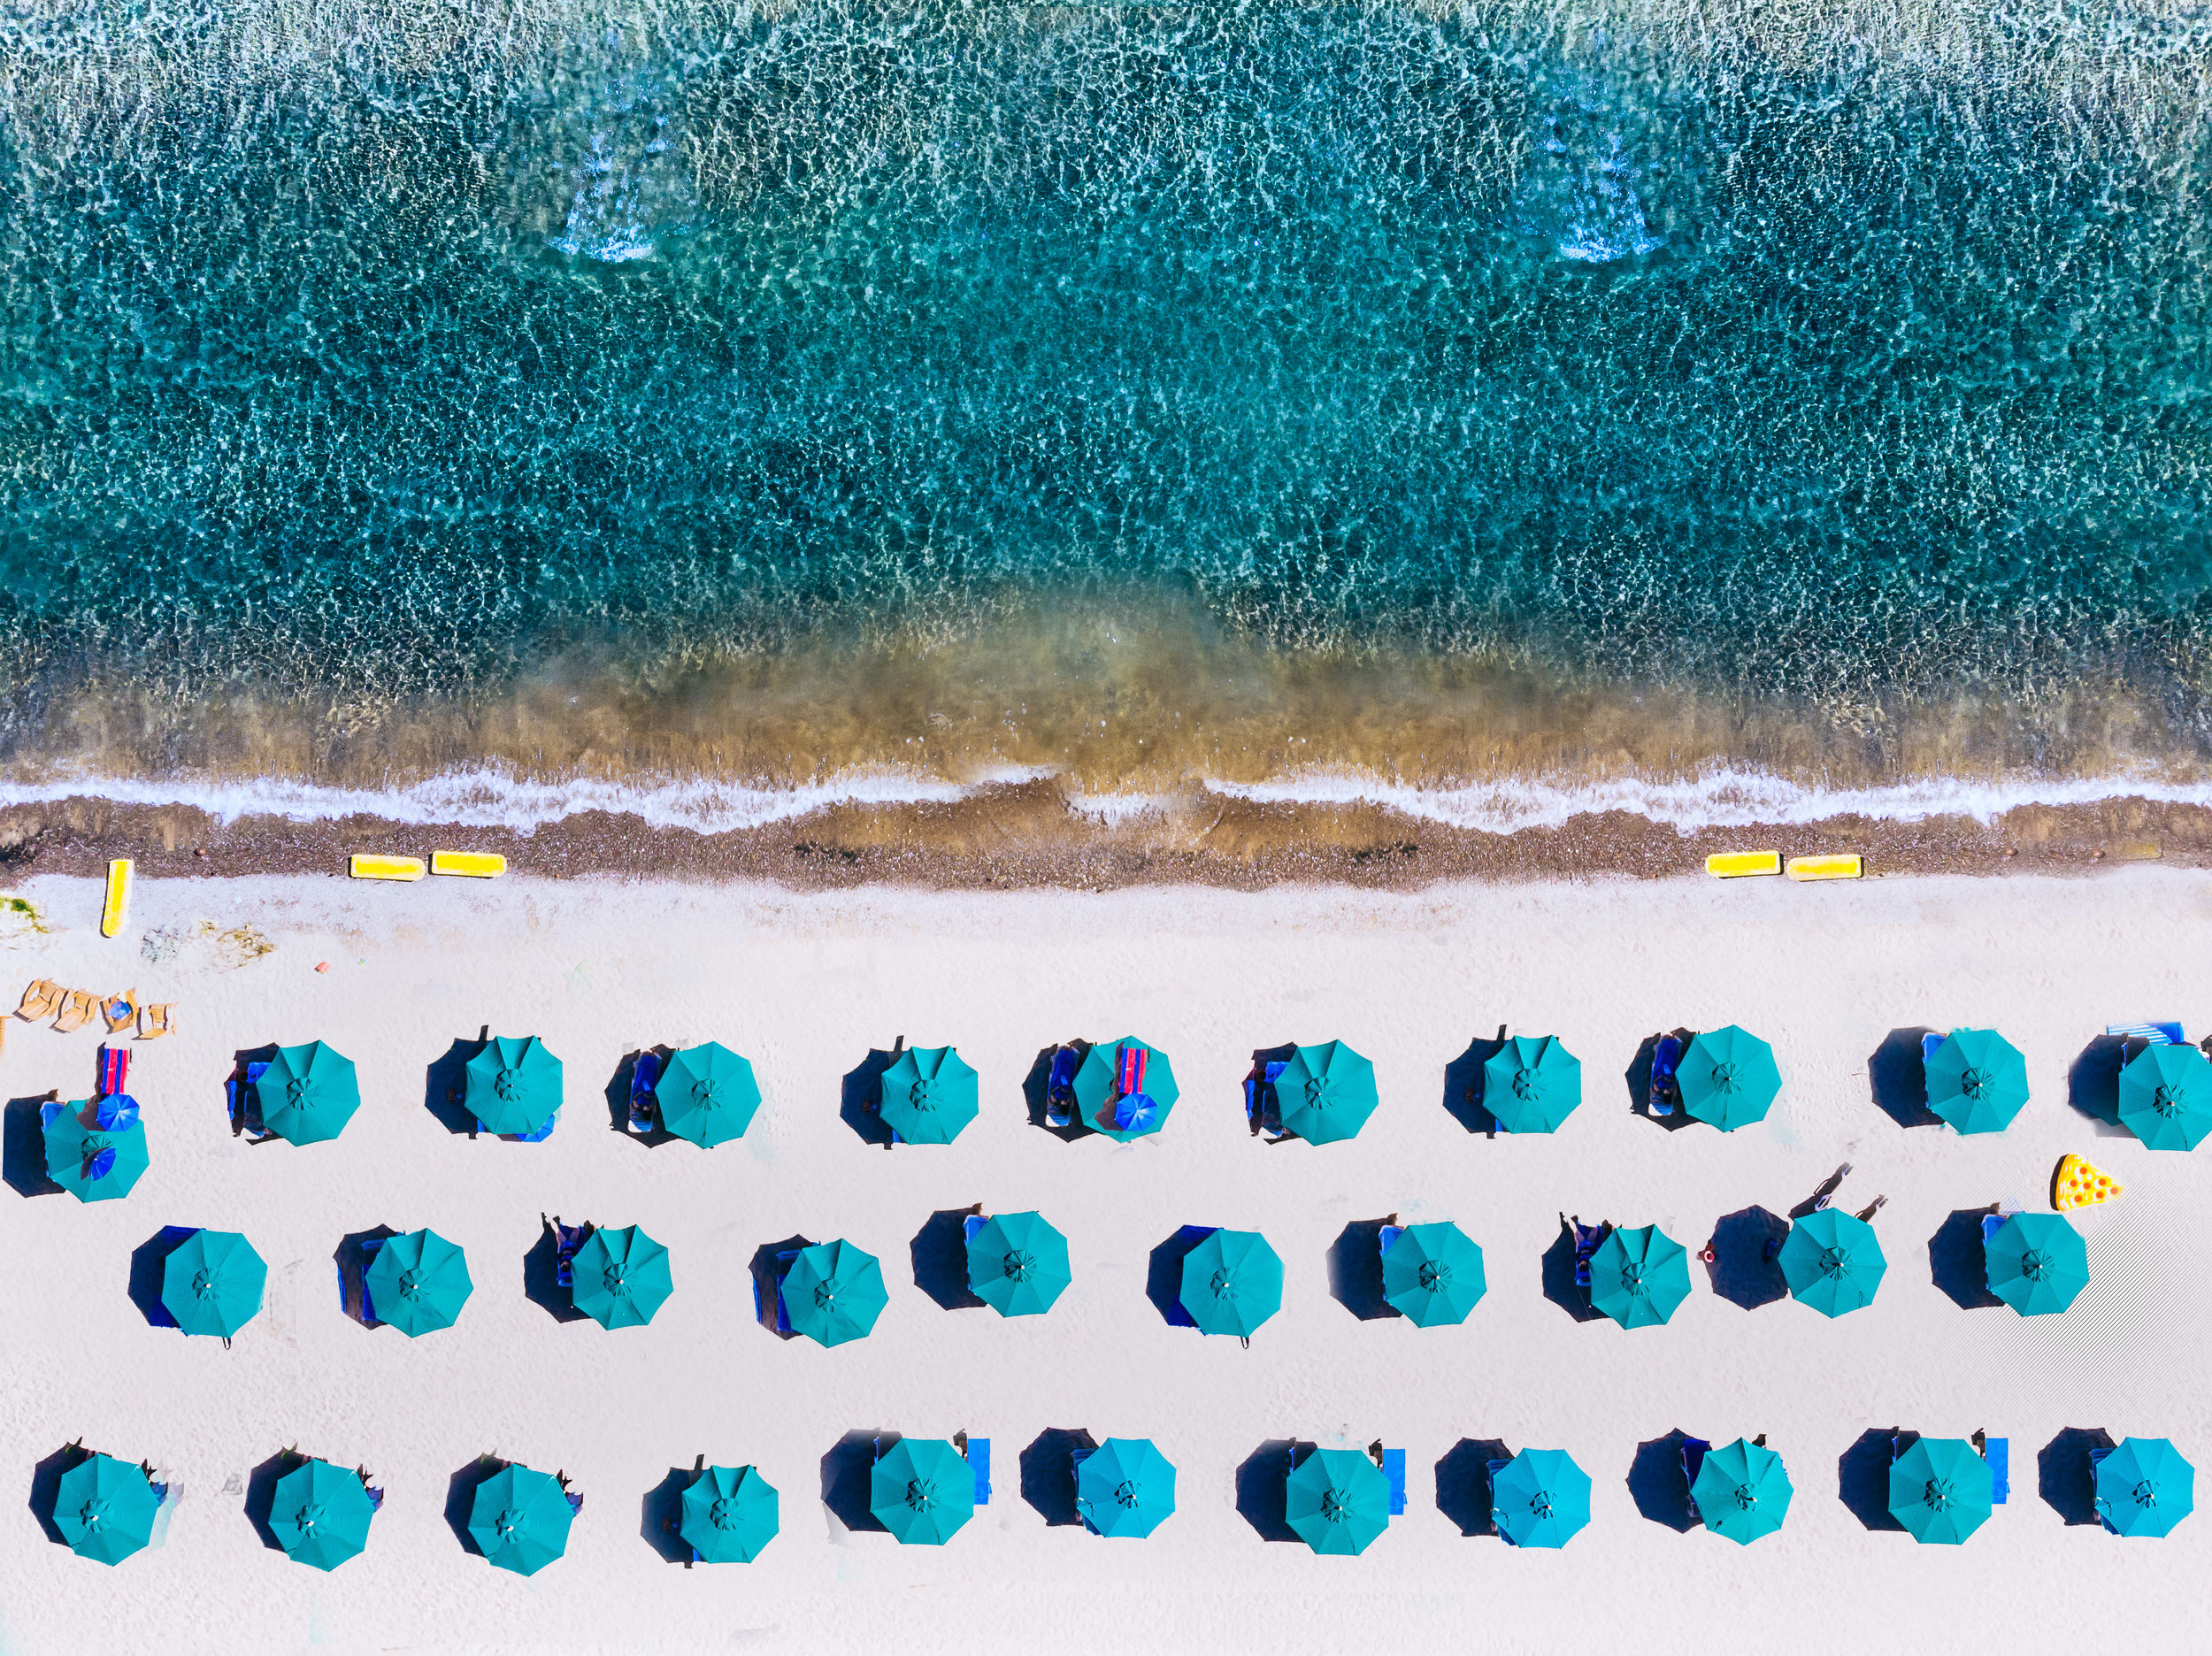 Beach lined with blue umbrellas